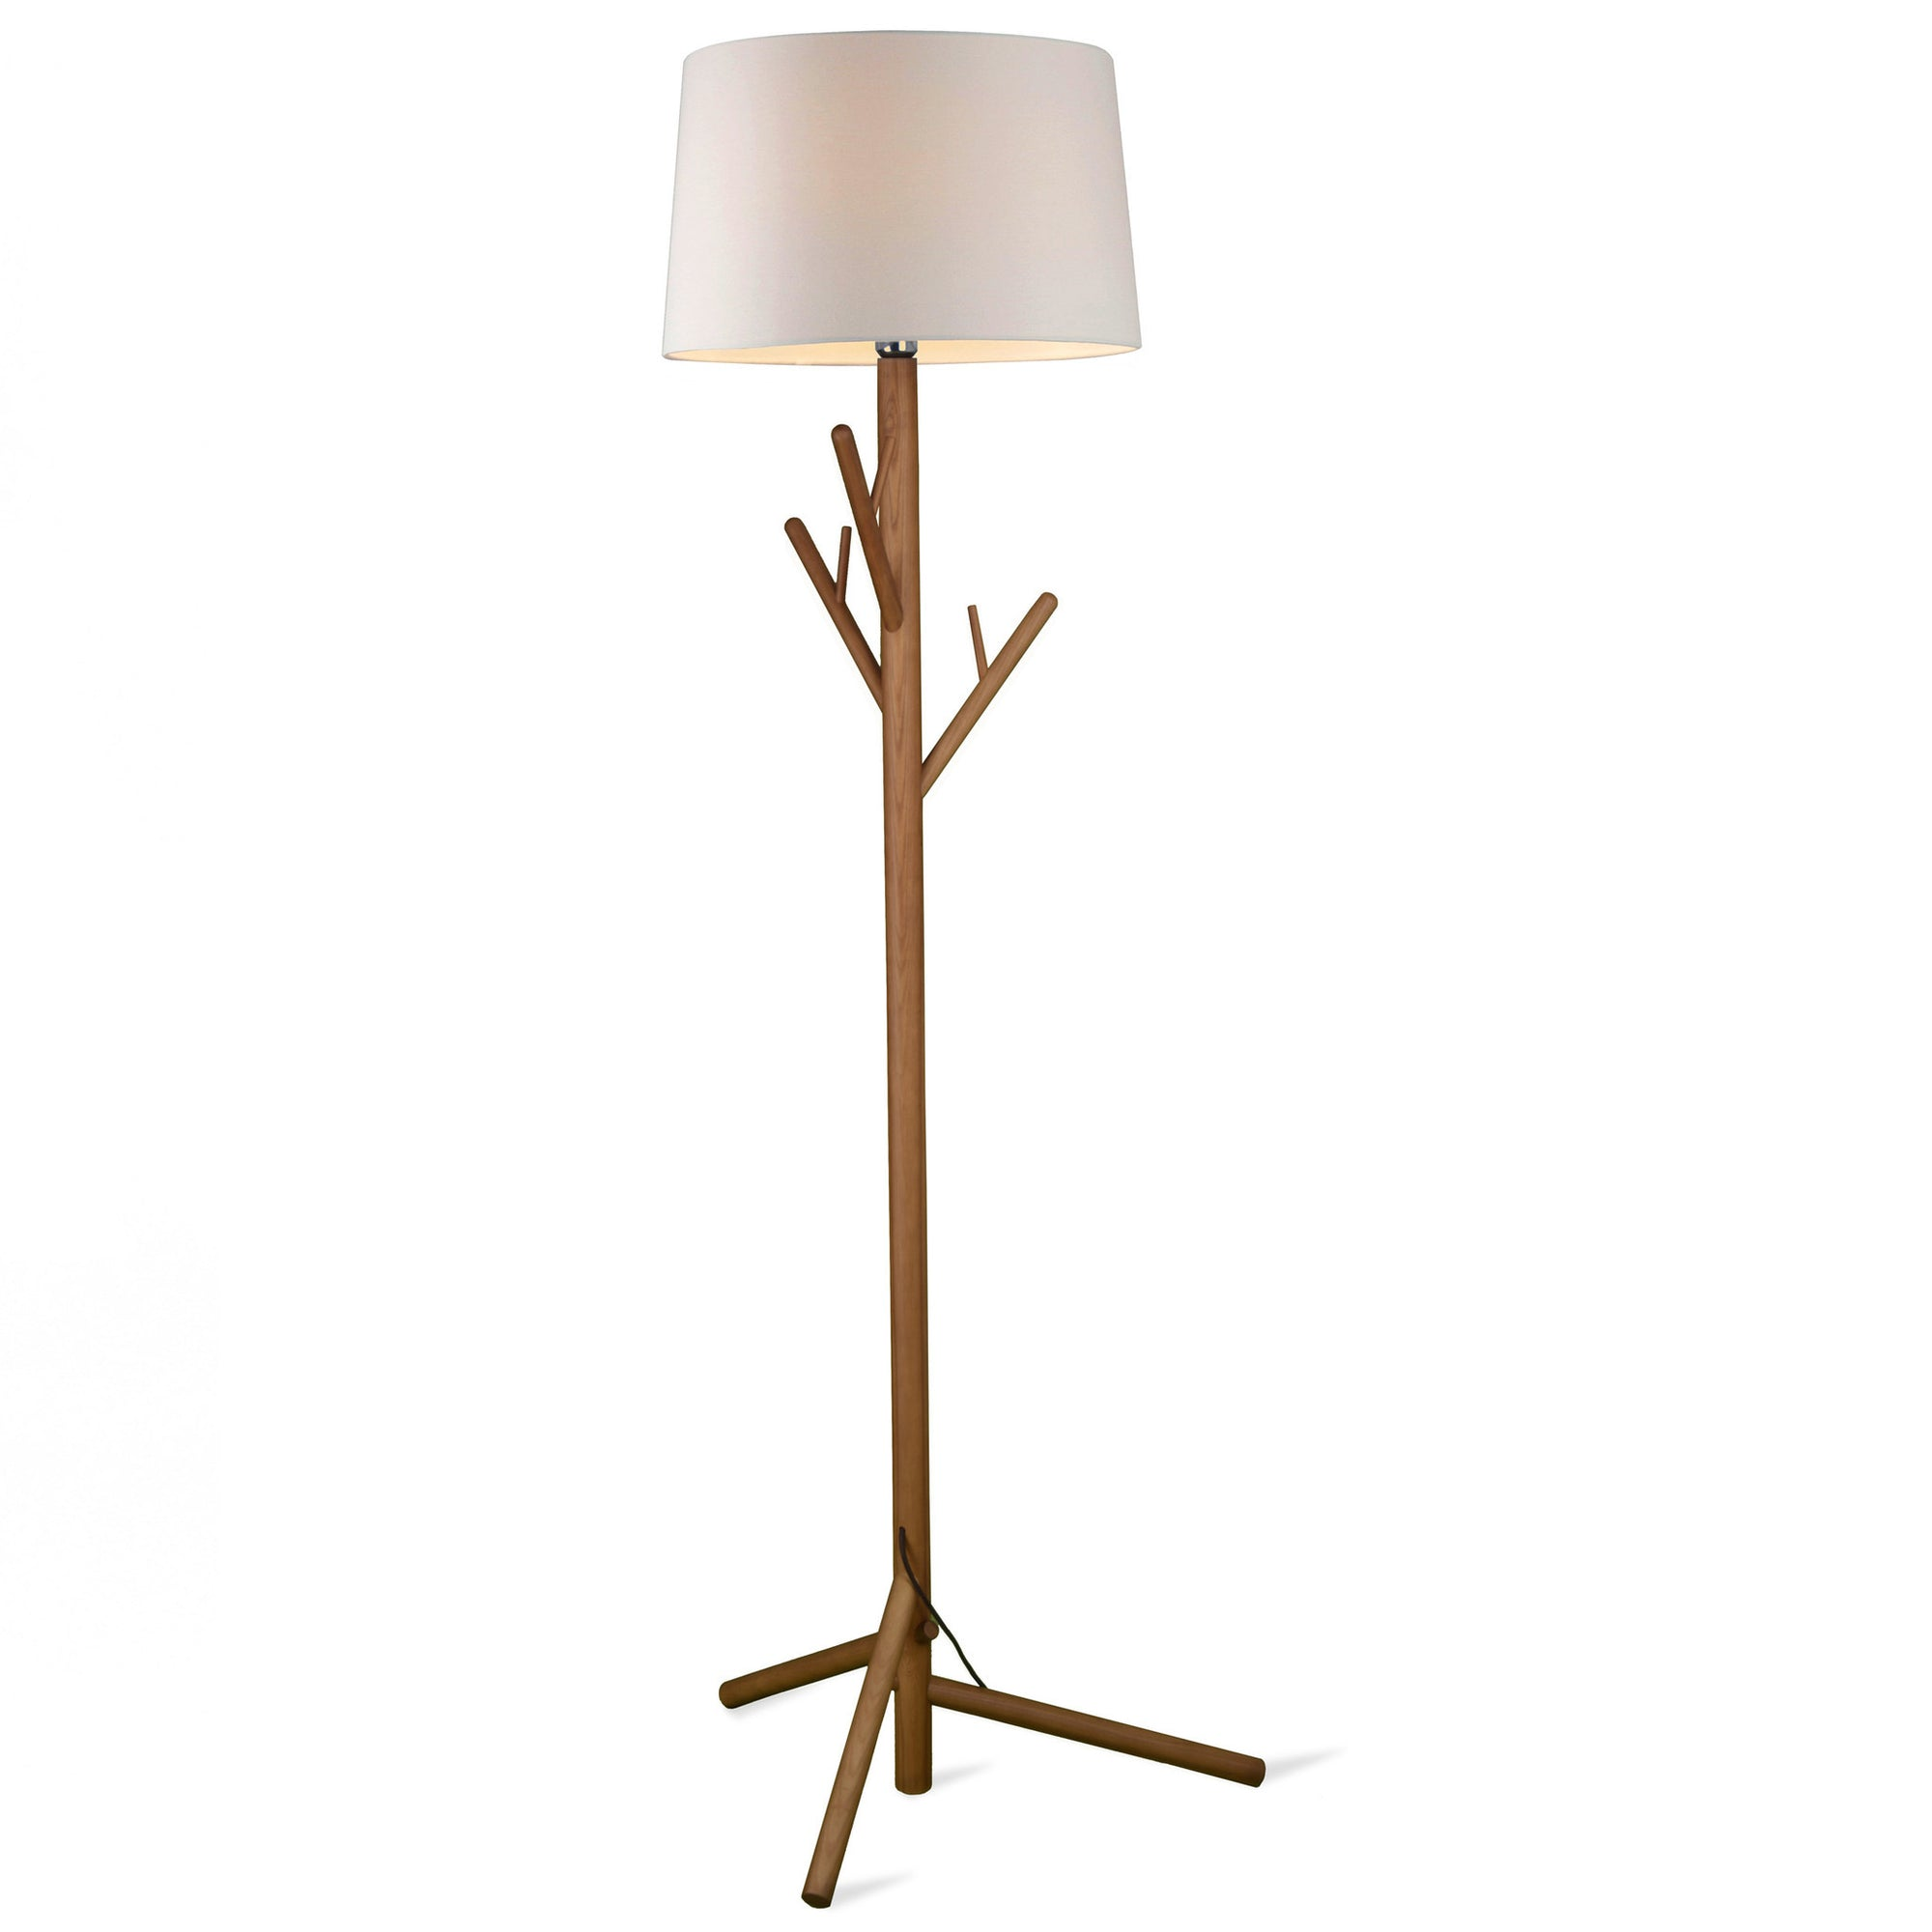 Floor Lamp - Hanger  Solid Wood Floor Lamp BPMT17-W